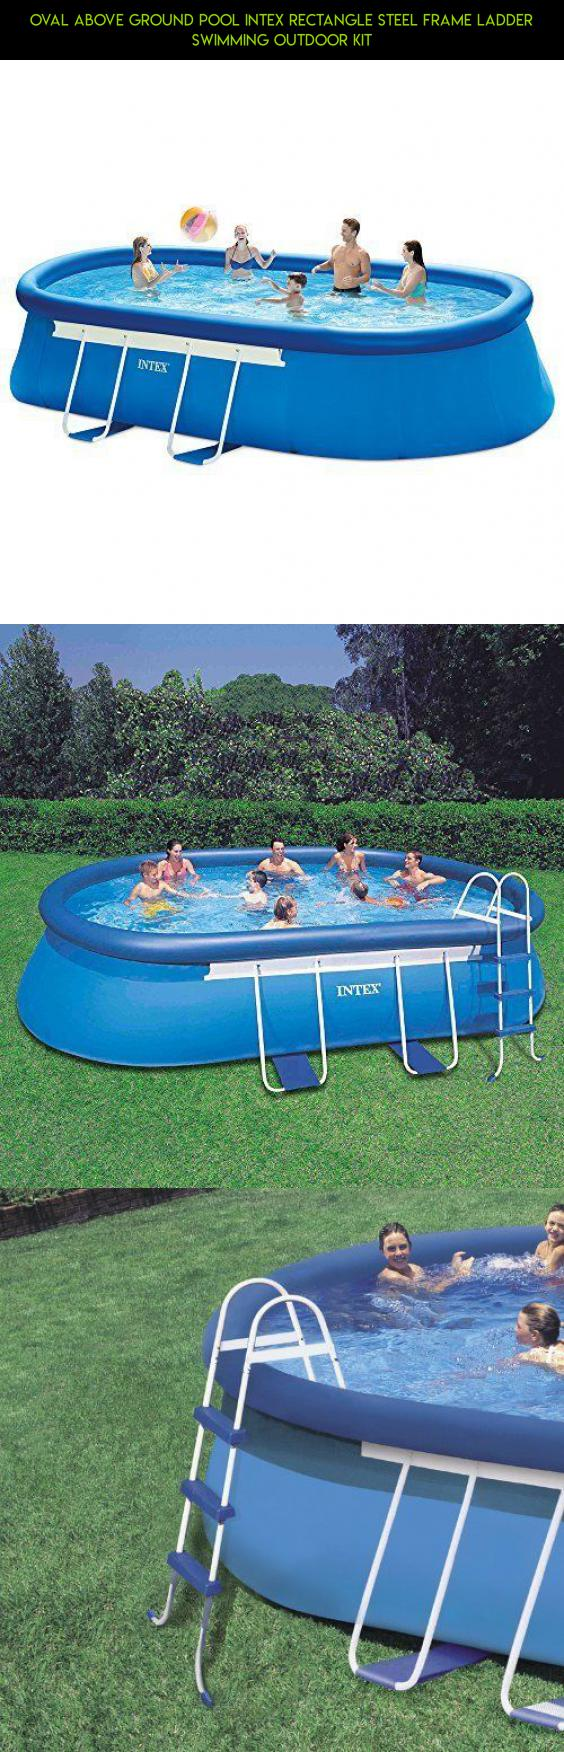 Oval Above Ground Pool Intex Rectangle Steel Frame Ladder Swimming ...